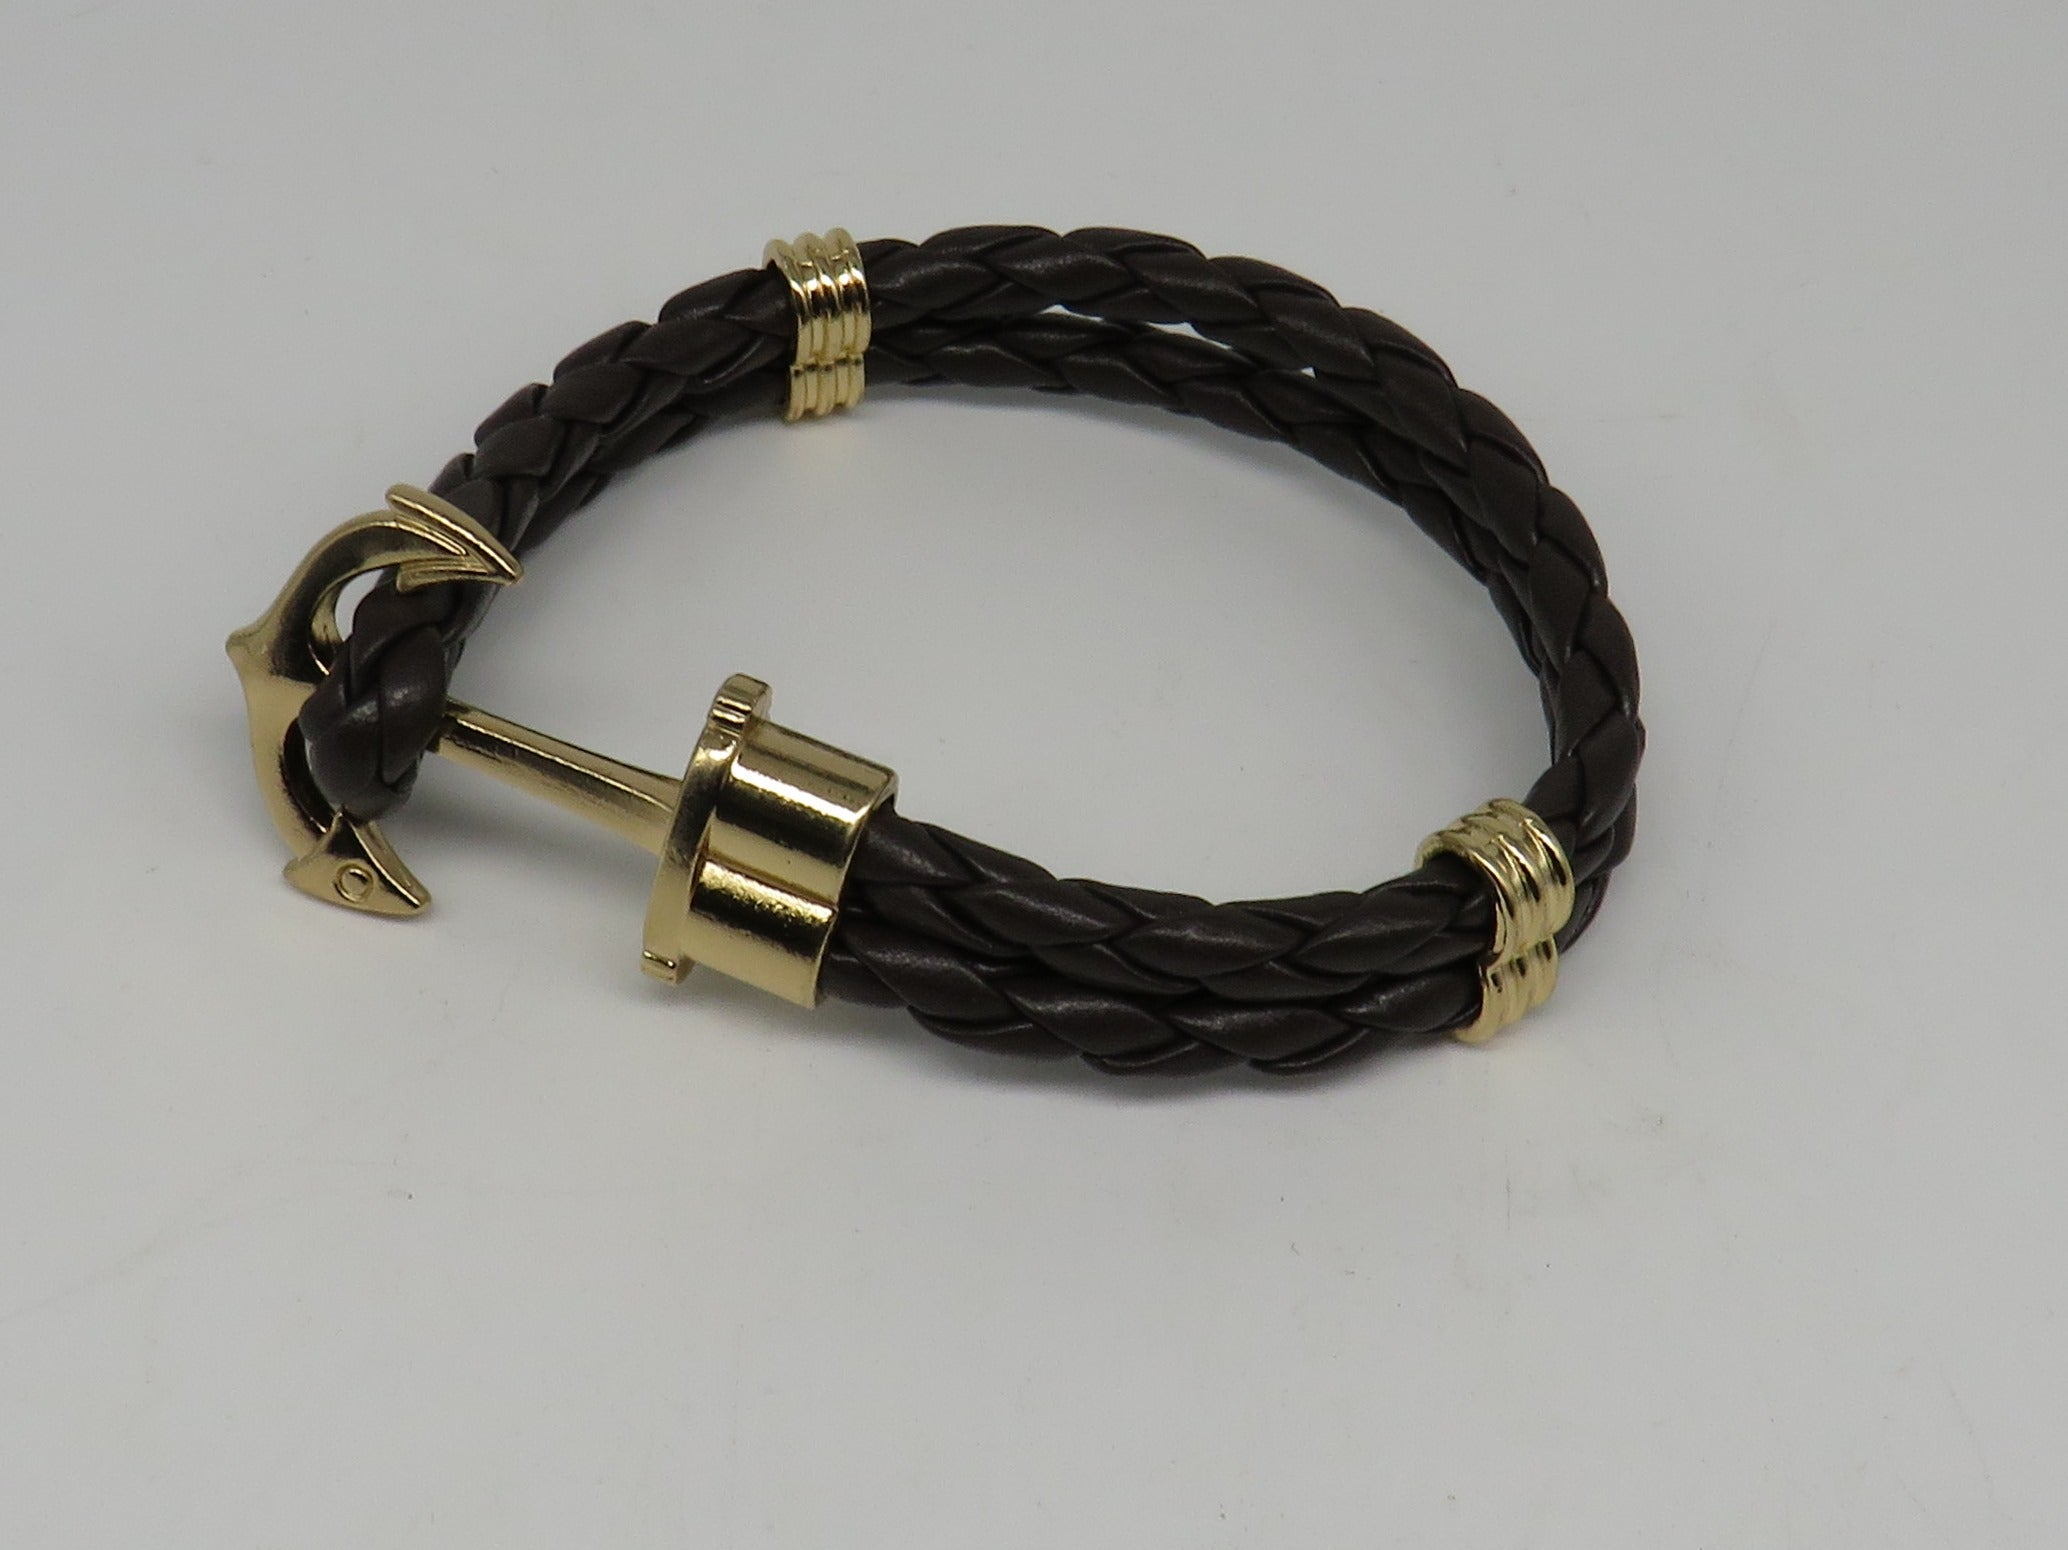 Unisex Leather Handmade Braided Cuff Anchor Bangle Bracelet Wristband Dark Coffee-Gold